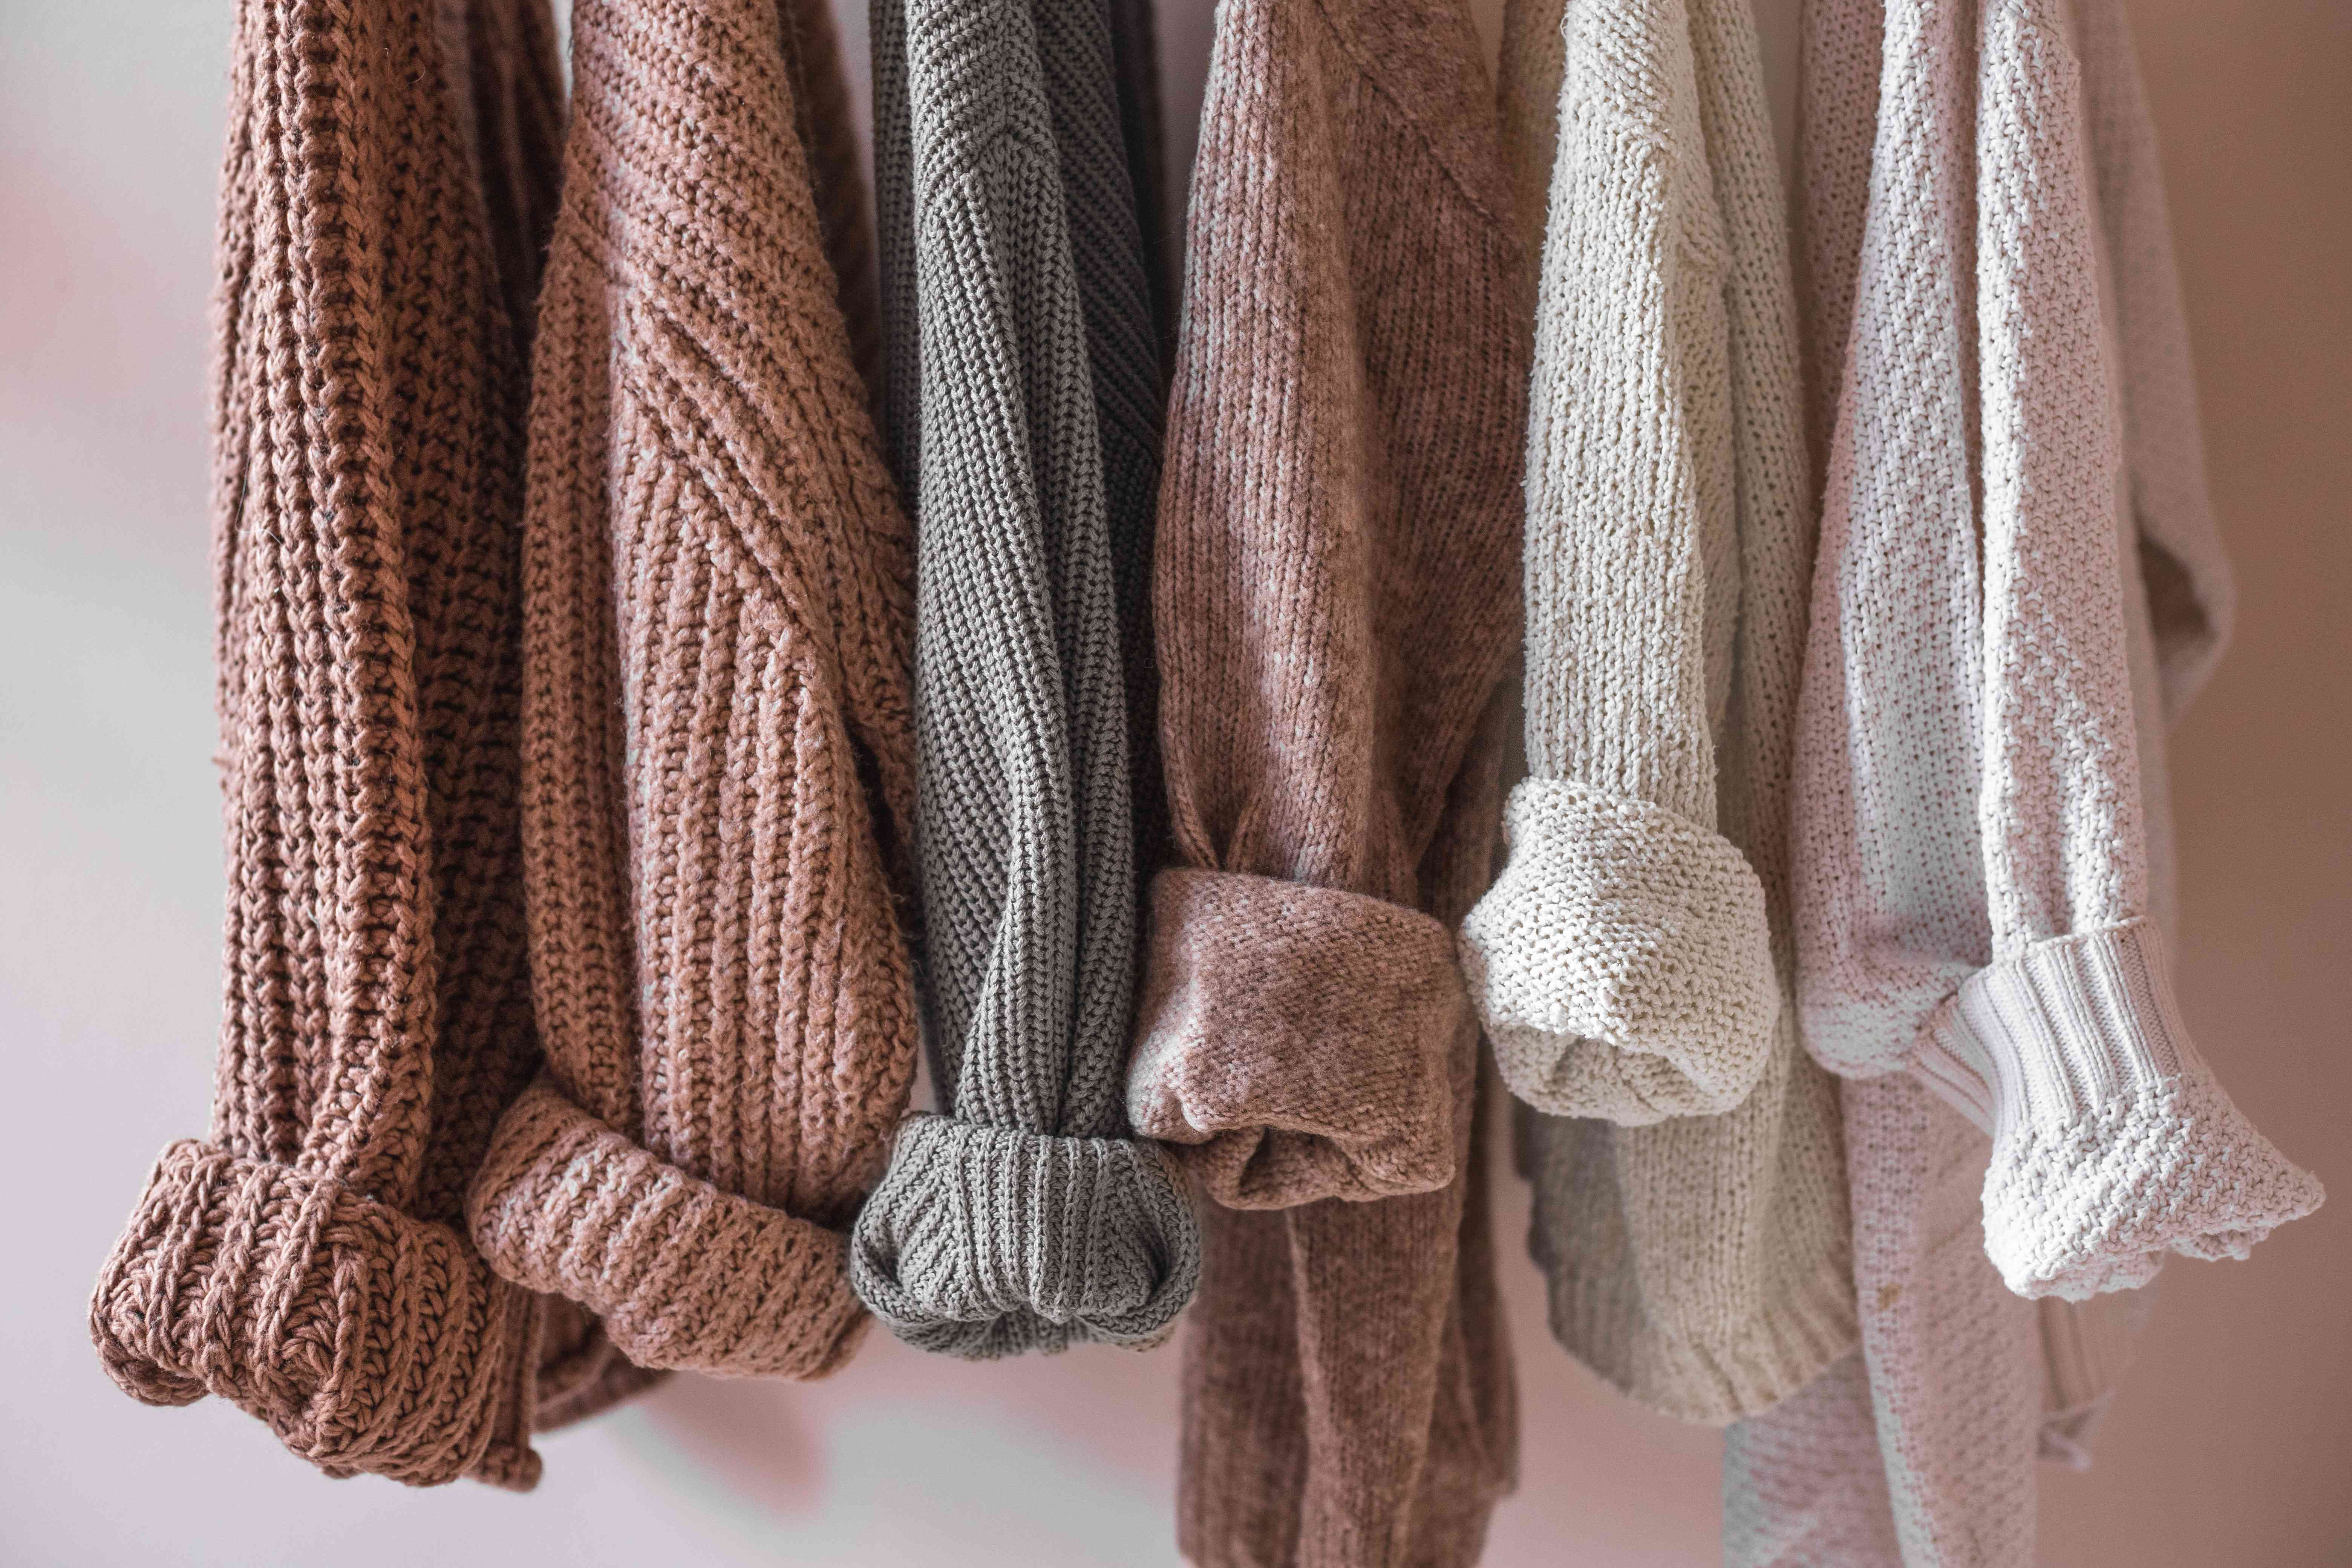 multiple sweaters in earth tone colors hanging with cuffs rolled up